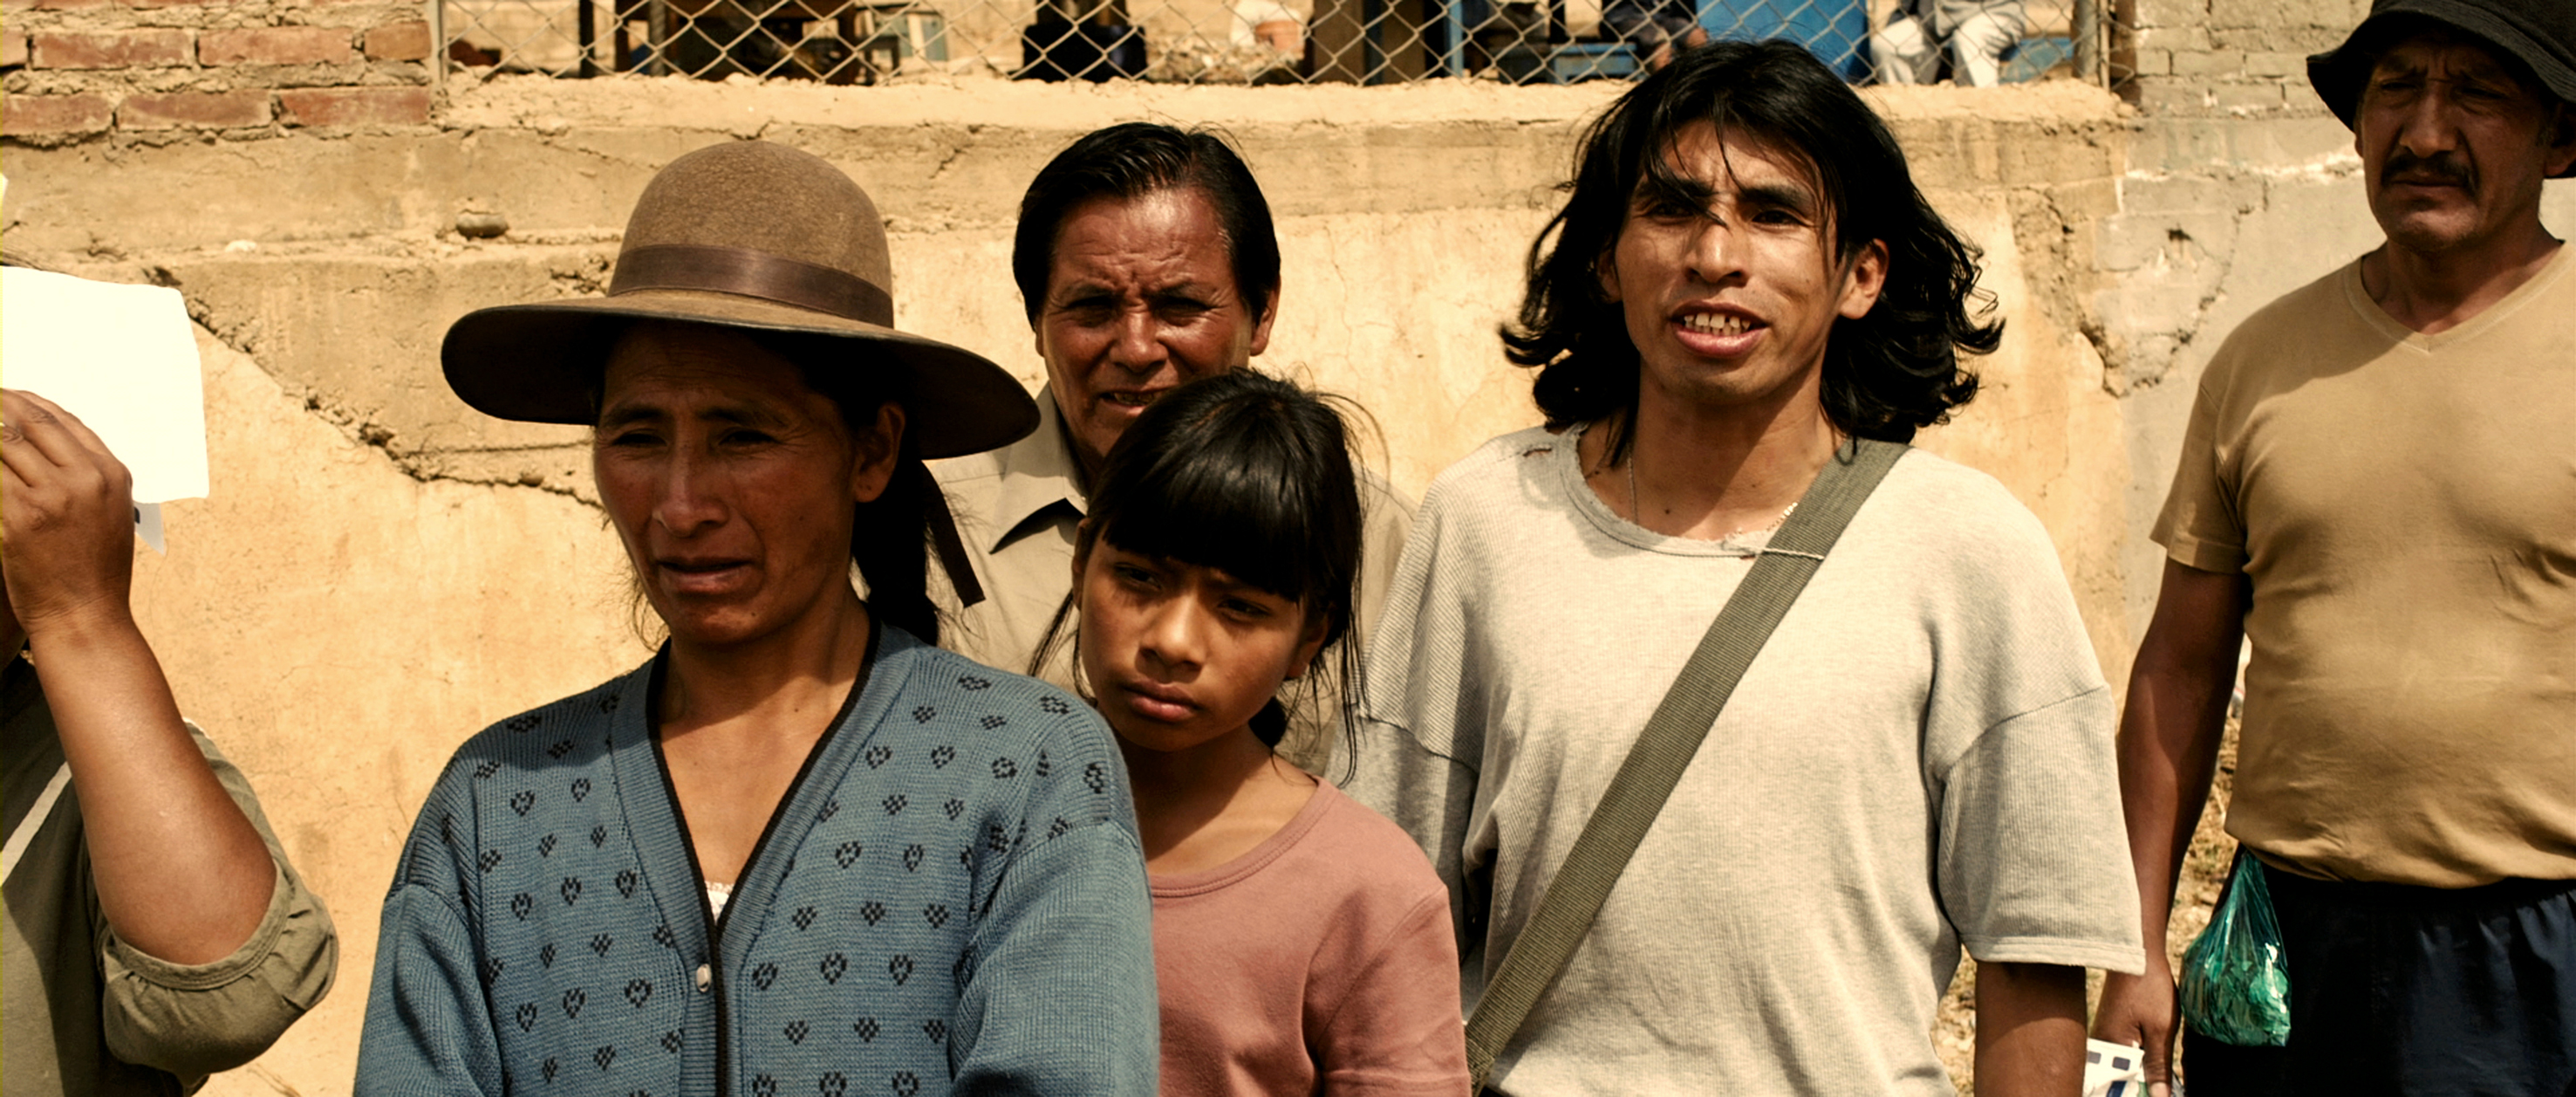 a movie analysis of tambien la lluvia Tambien la lluvia - even the rain is a spanish language drama about the making of a film in bolivia about the genocide of the native people by the spanish under the leadership of christopher columbus.